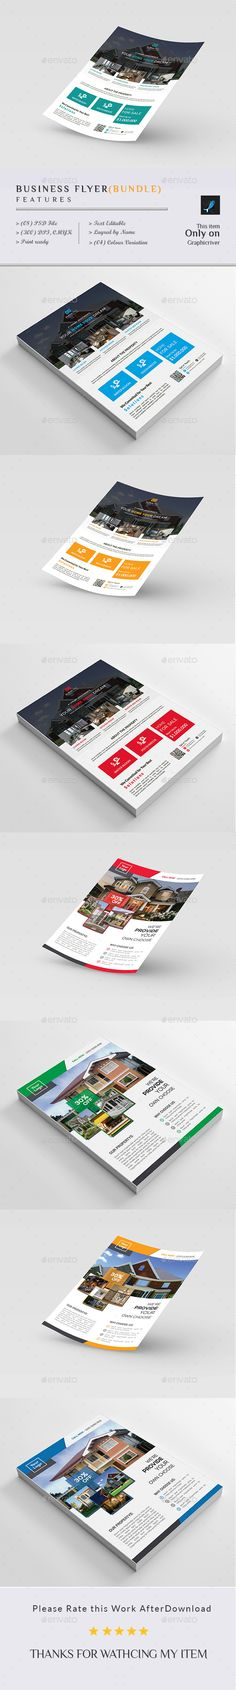 Real Estate Business Flyer Templates PSD